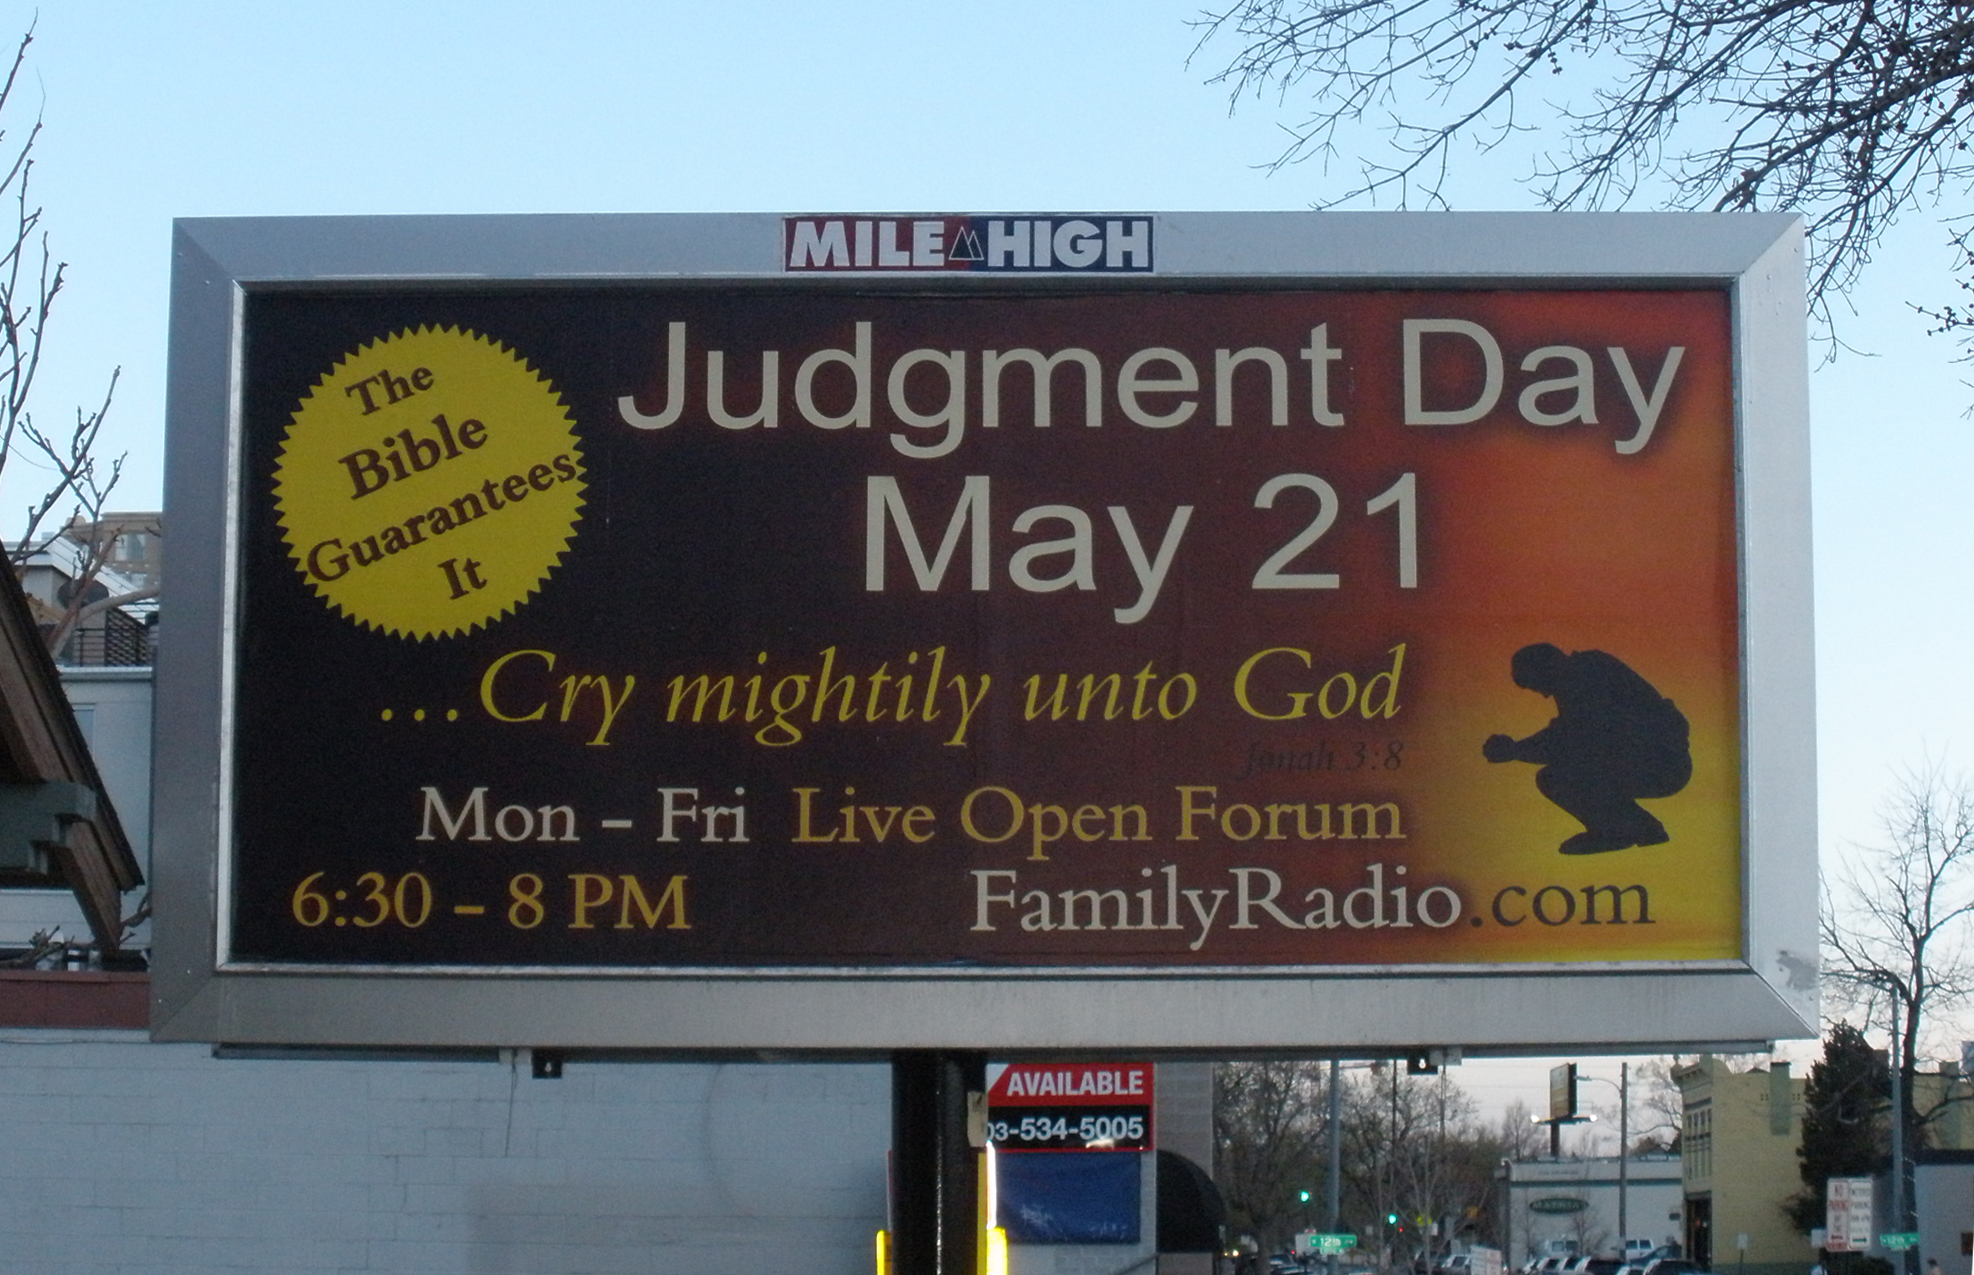 Judgment Day 21 May 2011